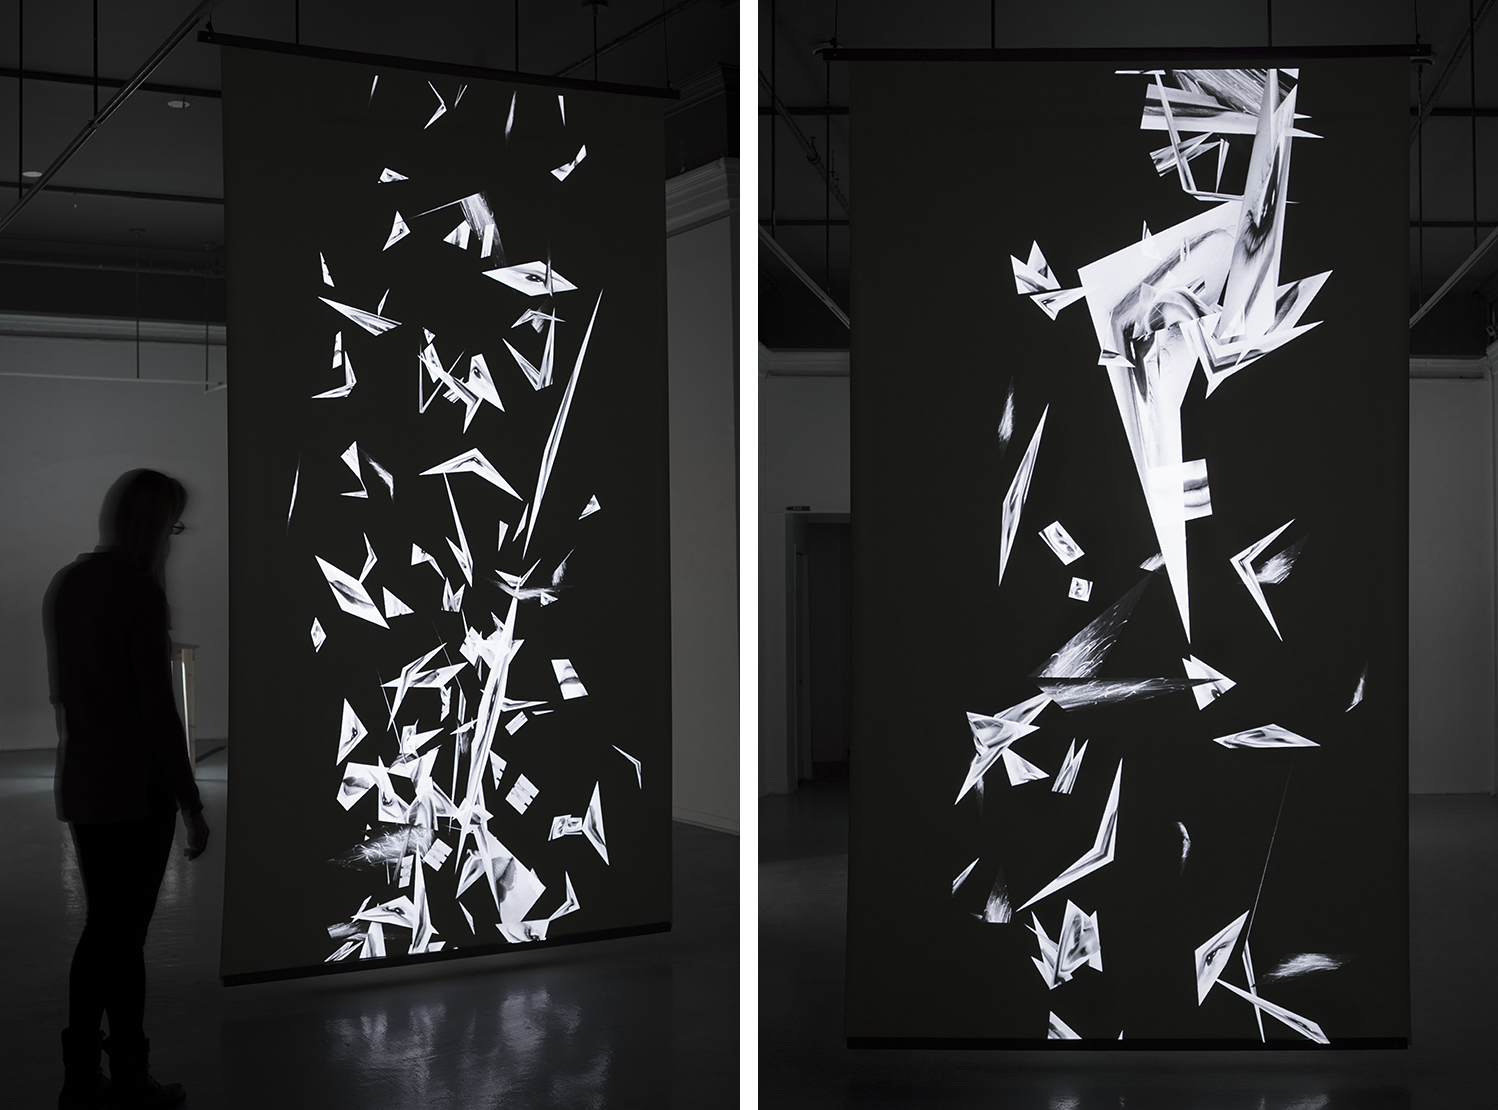 "Endless , 2019, digital projection, 3D animation, rear projection screen, 71x126"", 10:00 min.   (Installation View)   Confronted by a suspended vertical image plane that stands almost 11 feet tall, a projection displays 2D images that fold, bend and twist as they meander at varying speeds in an endless stream. A monochromatic composition within a black void, fragmented and invisible forces affect cropped images of female bodies. Together, gravity and wind push and pull the pieces, becoming a metaphor for the ubiquitous trafficking of images in today's digitized society. This double-sided rear projection invites the viewer to get up close, to circle around it, and to view its almost non-existent depth from the side. The appropriated images used in this animation are sourced from the Internet, found using varying keywords in image searches from files tagged with assorted words: woman, female, female body, feminine, etc. Just like the attributes of the digital image, female representation for me remains in a state of continual flux and instability. Hard to define and pin down,  Endless  displays this mystifying gesture as a sensation of visual pleasure. The tumbling, folding, and creasing images create a quiet atmosphere within the gallery, where viewers can contemplate if, how, and when these images will settle."